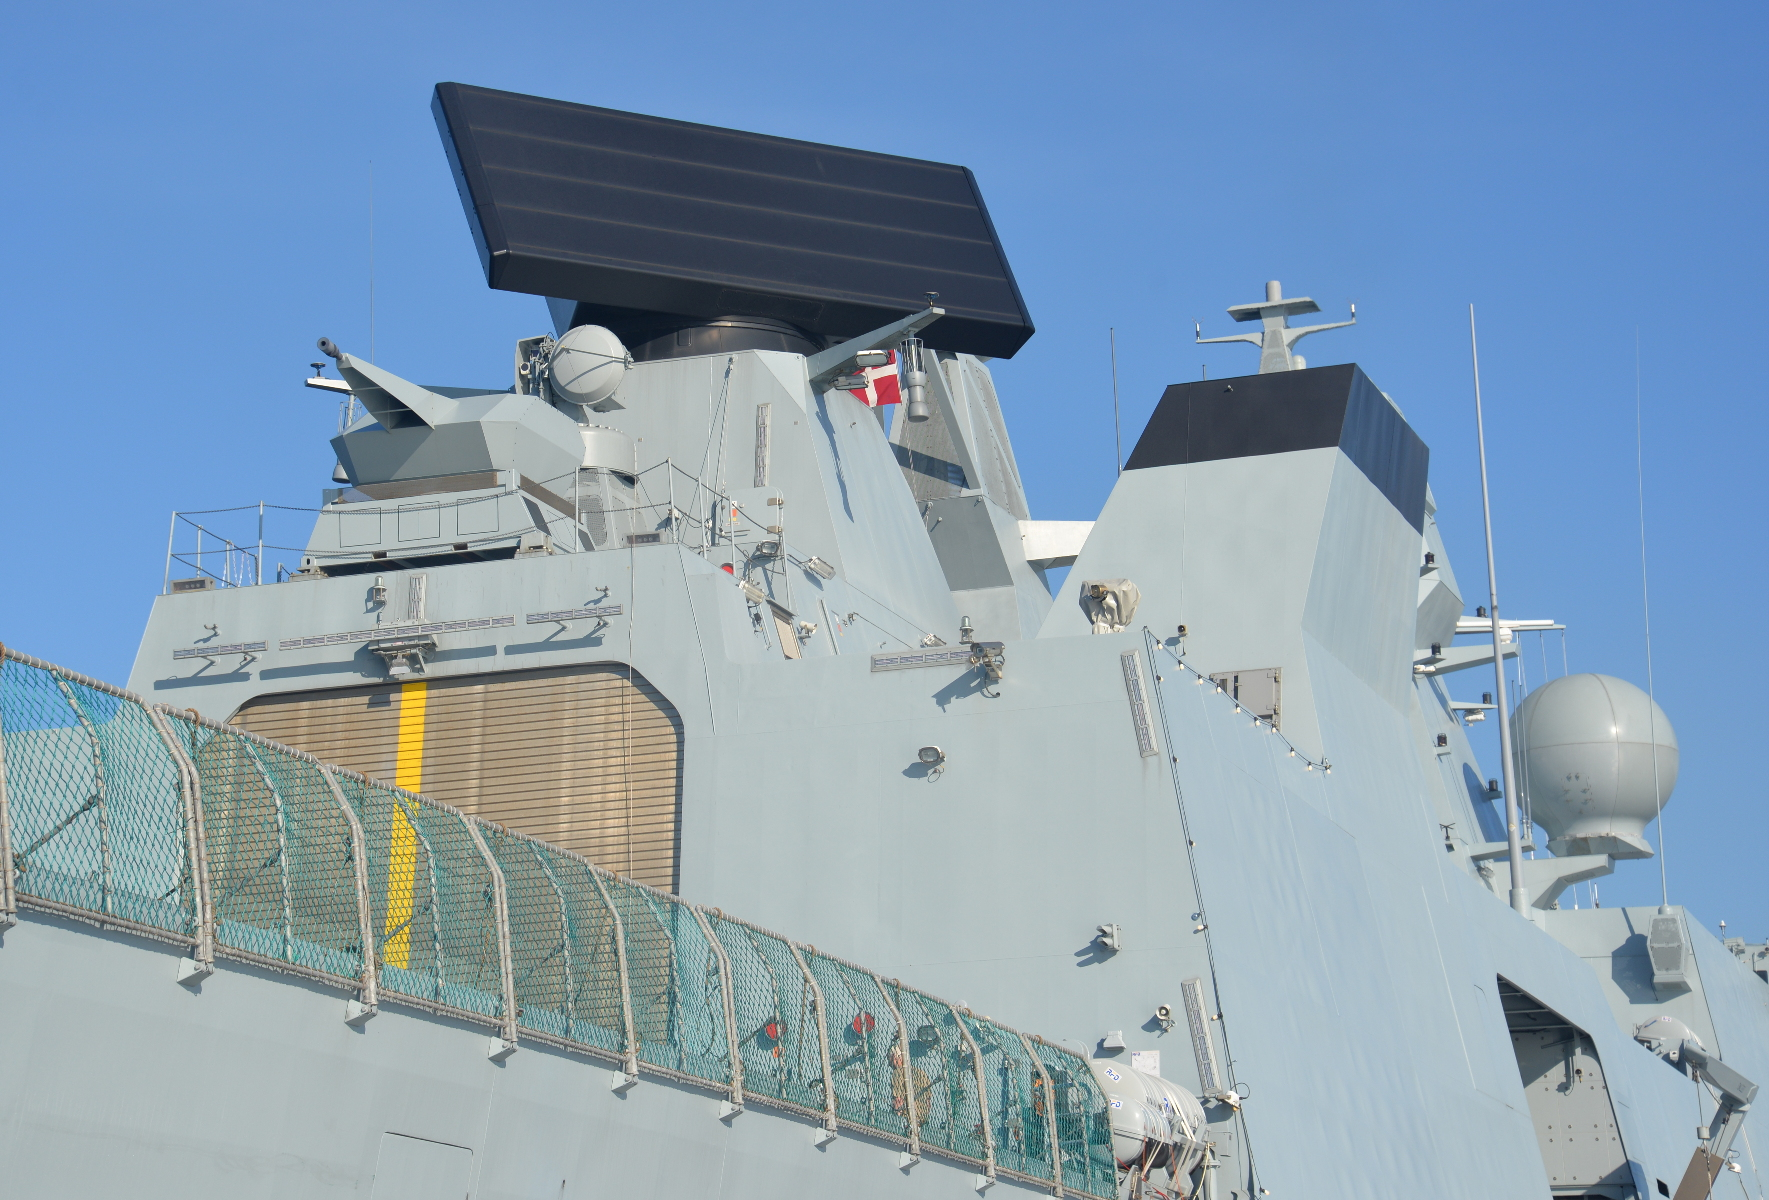 Closer view of the Smart-L radar. A Rheinmetall Oerlikon 35mm Millenium close-in weapon system is to be installed atop the hangar. The Swiss-manufactured weapon is in service with the Danish and Venezuelan navies.